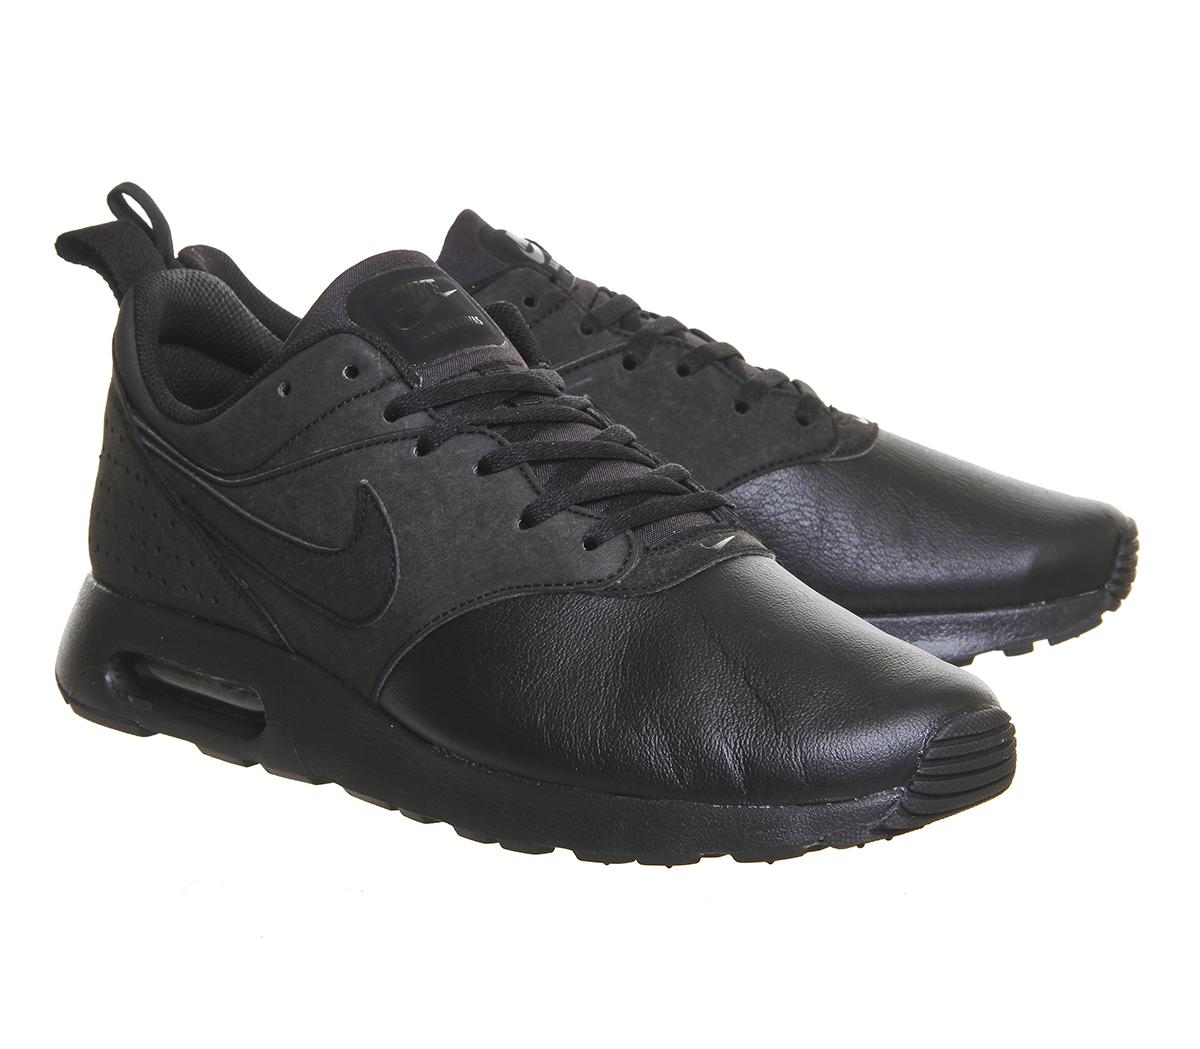 Nike Leather Air Max Tavas Low-Top Sneakers in Black Leather (Black) for Men